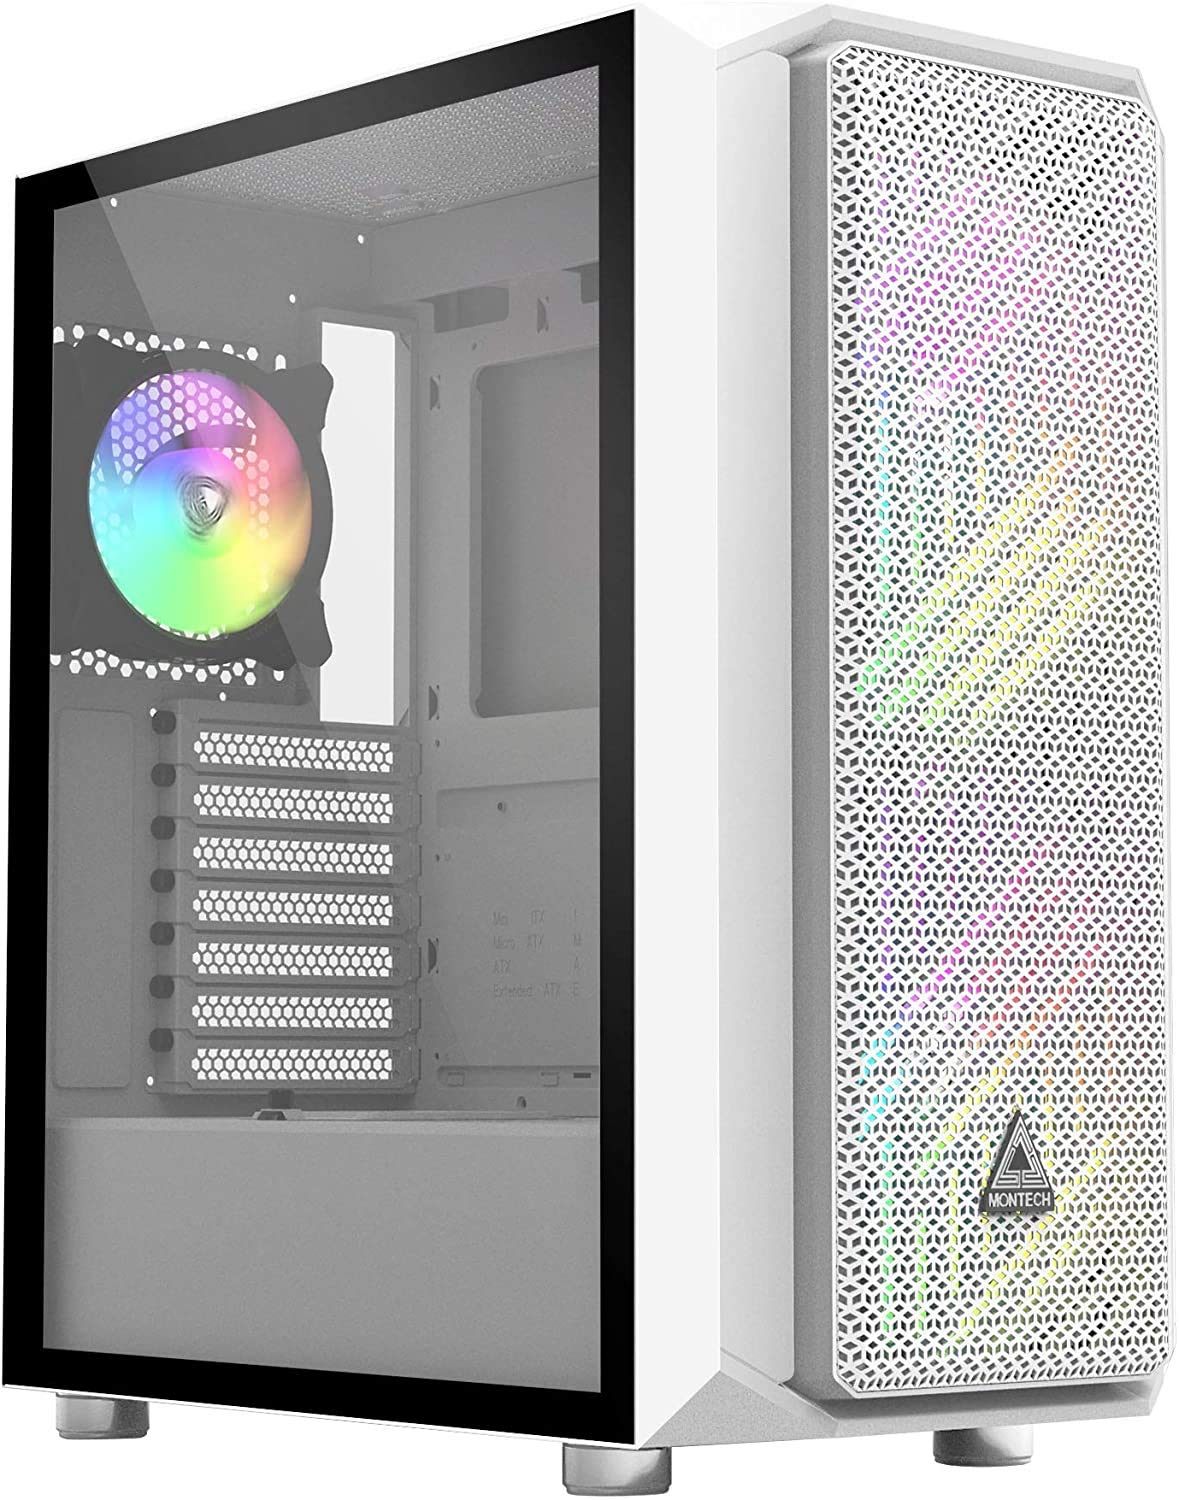 Montech AIR X White ATX Mid-Tower Case, Super High Airflow, Pre-Installed Dual 200mm ARGB Fans, 120mm ARGB Fan, ARGB Controller, Motherboard Sync, Pull Out Tempered Glass